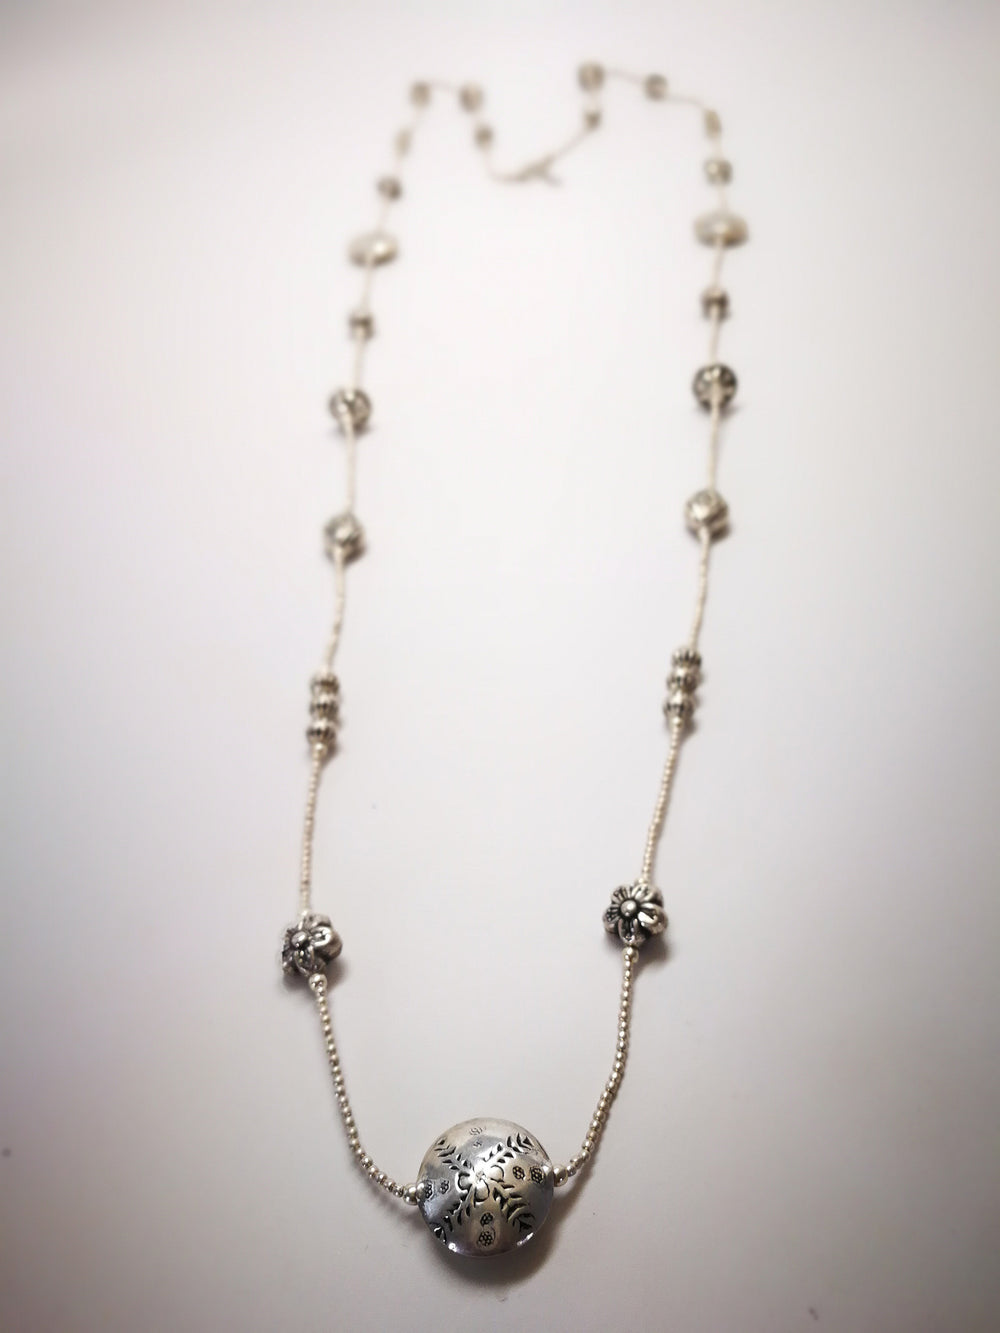 Silver Necklace with Silver Textured Beads